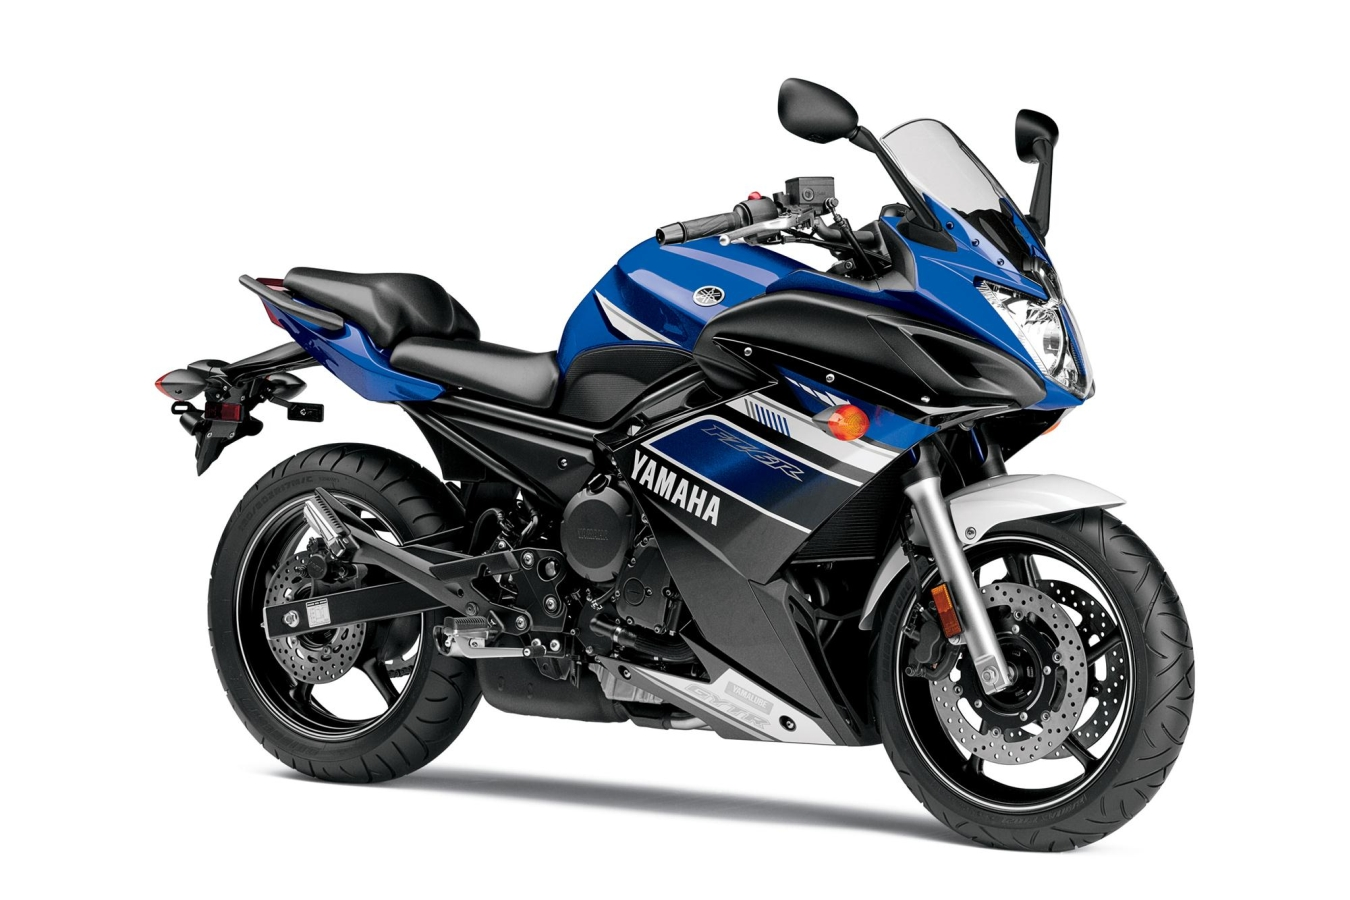 Yamaha fz6r photo - 3